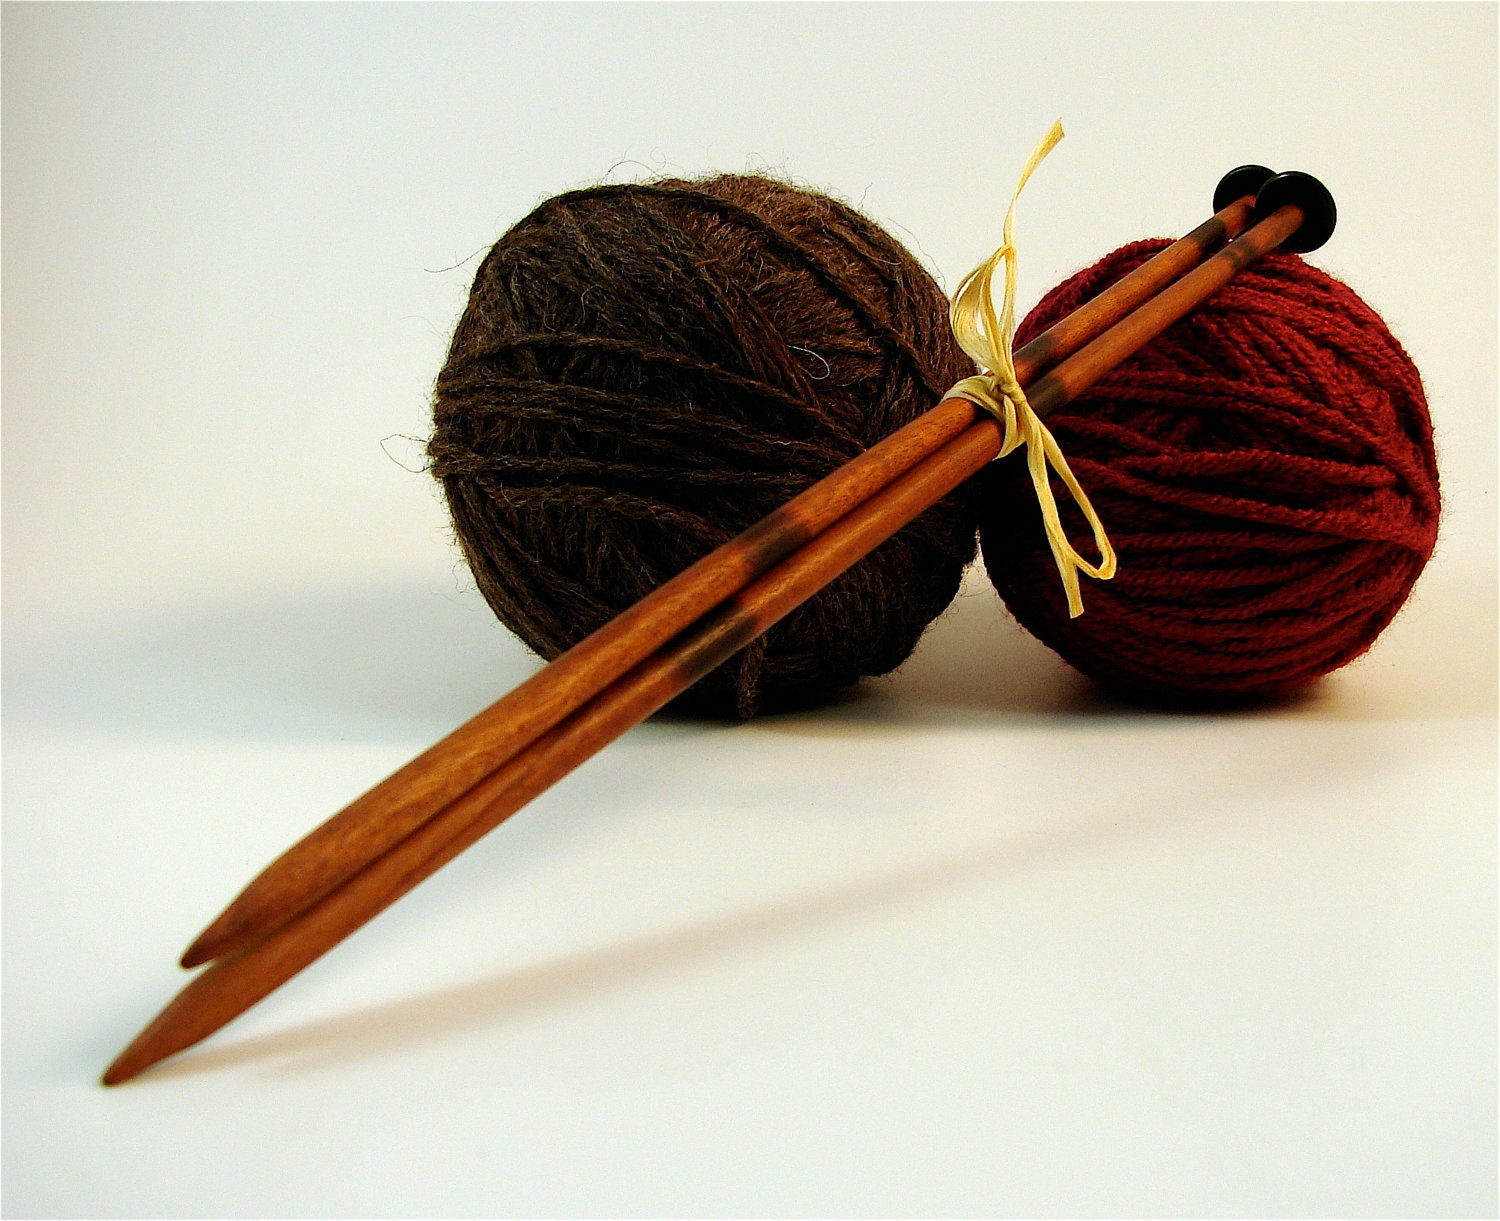 Wooden Knitting Needles : Request a custom order and have something made just for you.